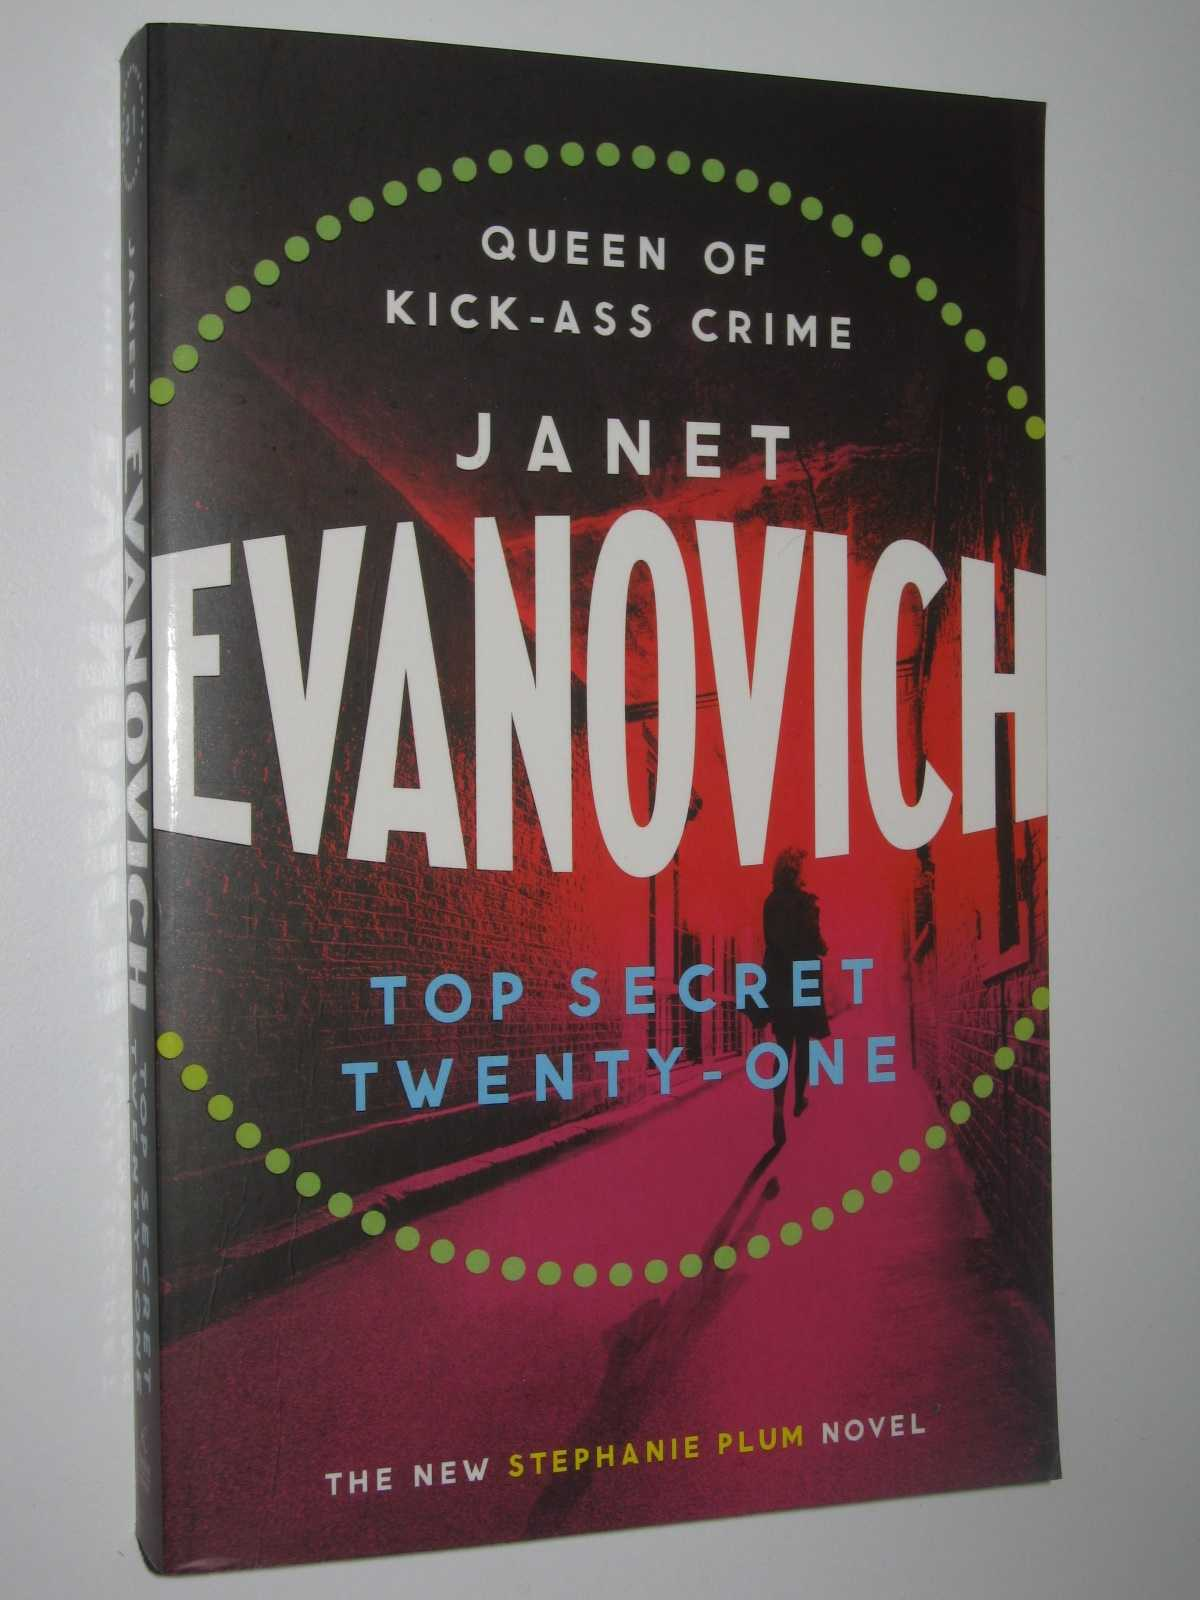 Top Secret Twenty-One - Stephanie Plum Series, Evanovich, Janet